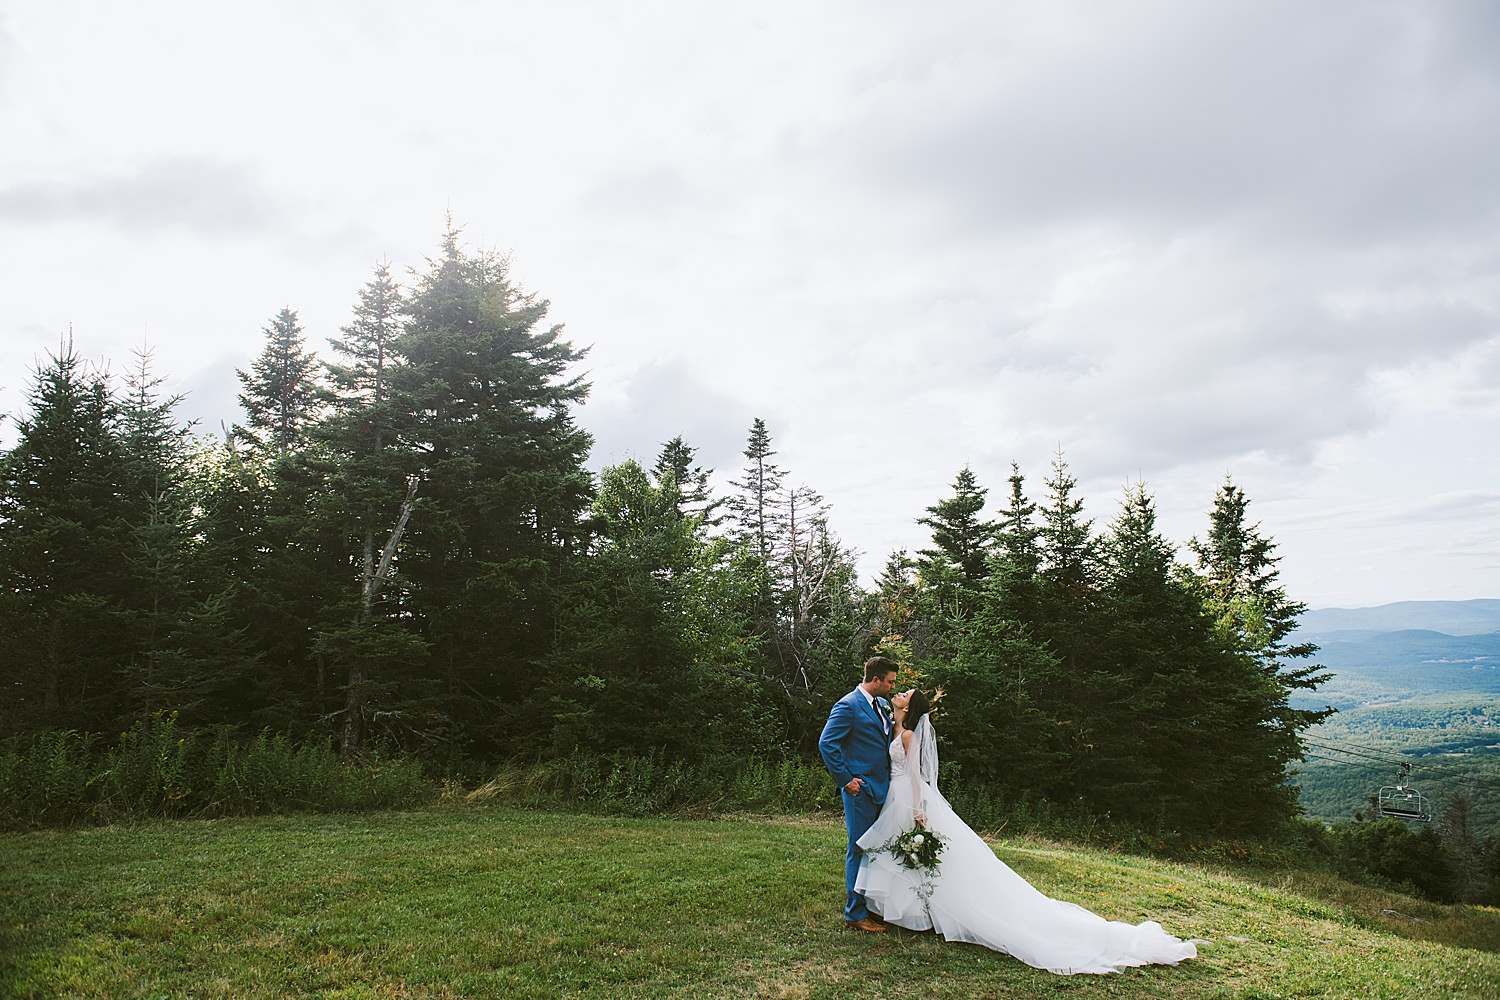 Bride and groom embracing on the mountain